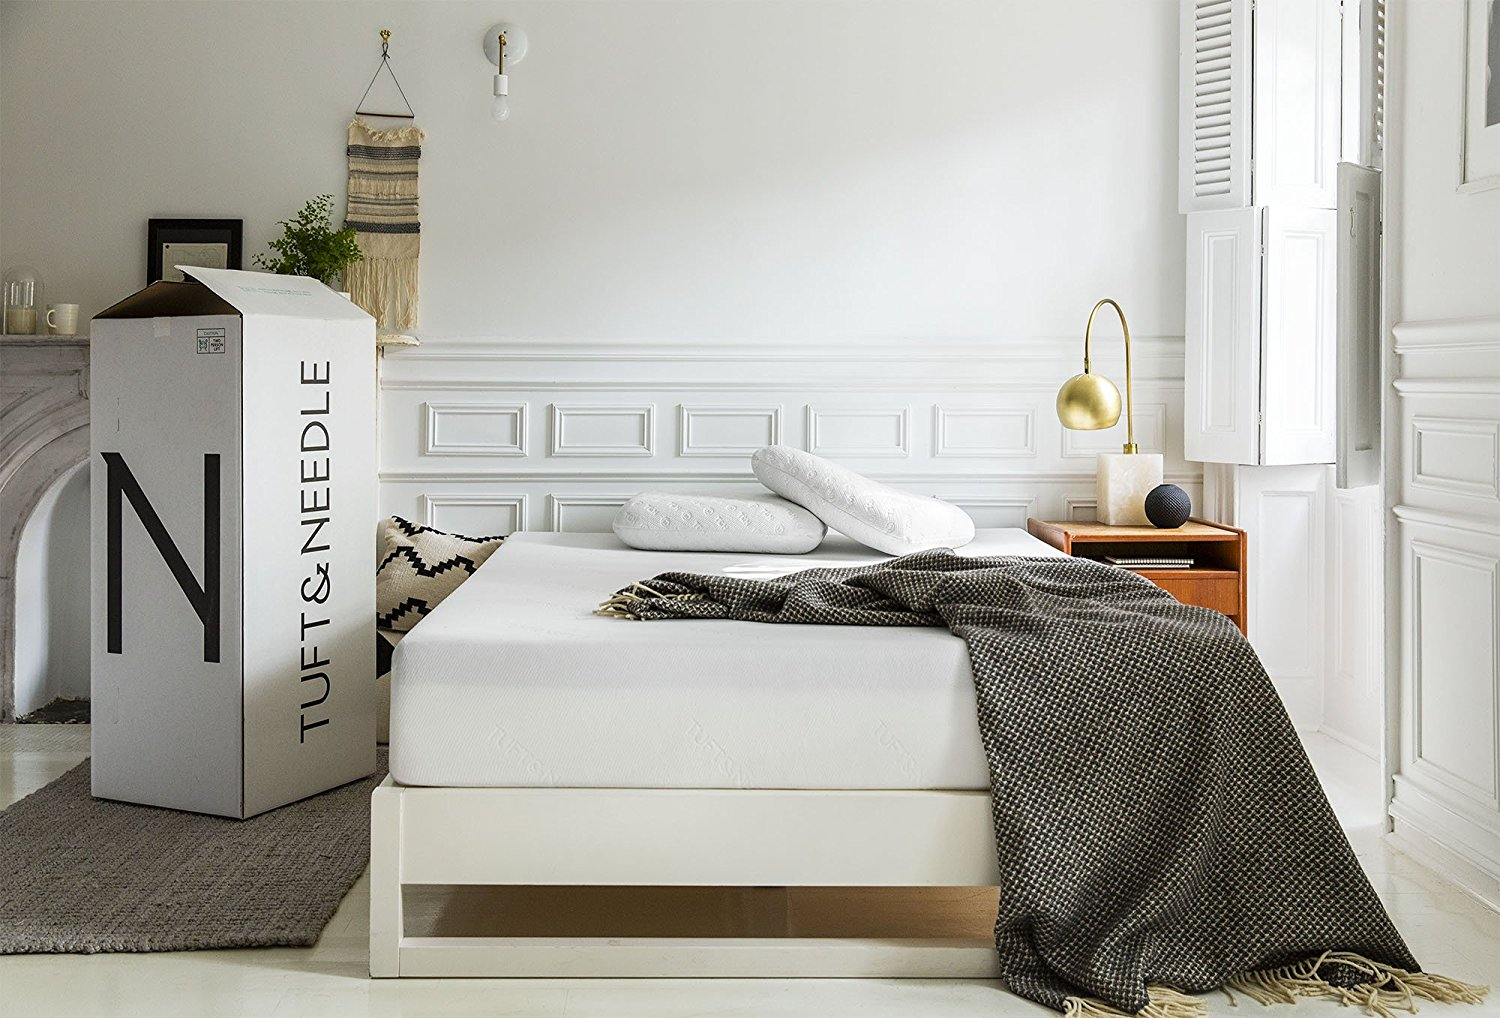 Tuft and Needle Memory Foam Mattress Review